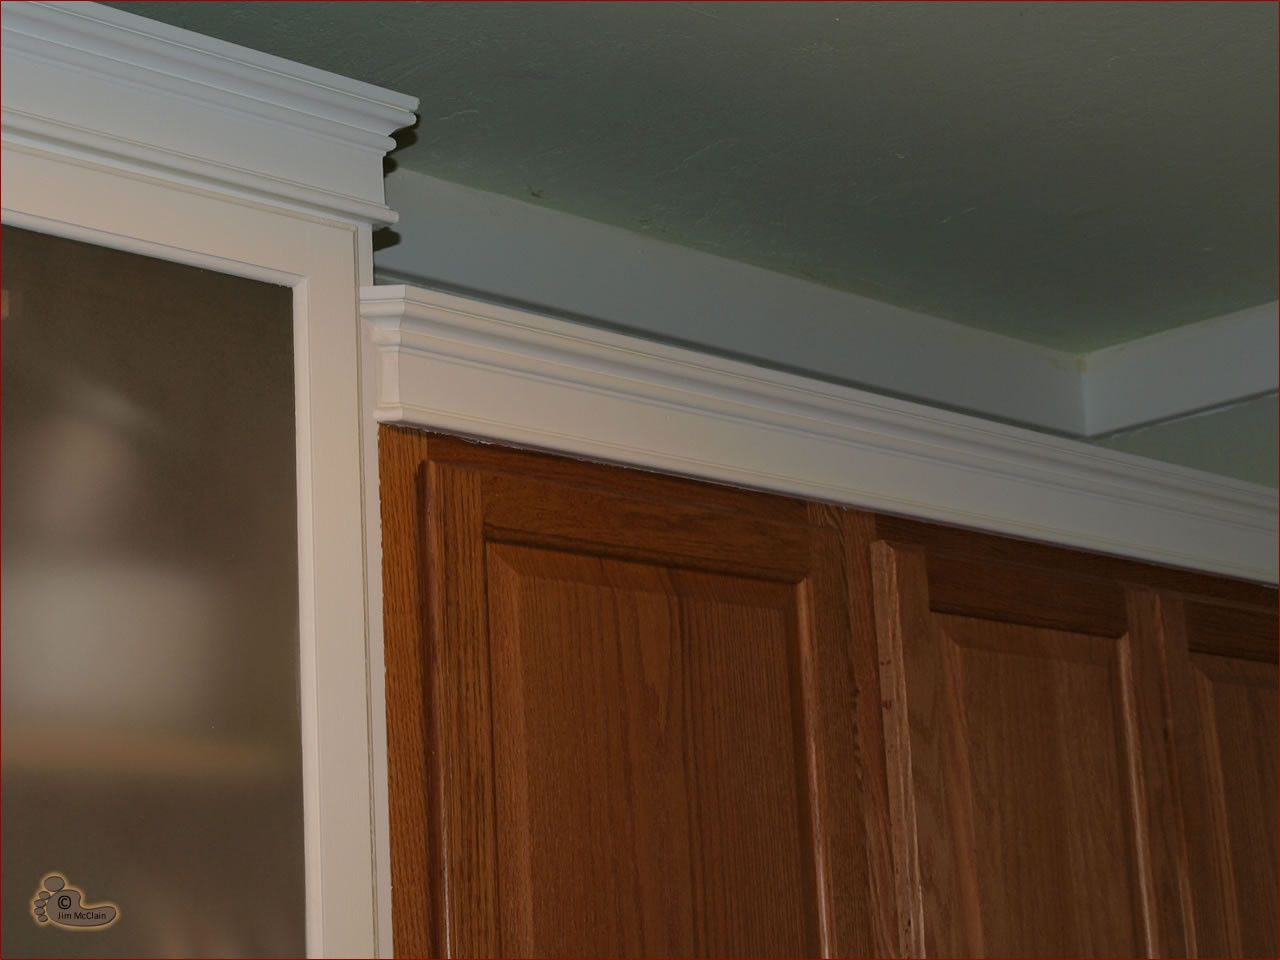 2019 Crown Molding On Top Of Kitchen Cabinets Kitchen Cabinets Update Ideas On A Budget Check More At Http Www Planetgreenspot Kitchen Cabinet Crown Molding